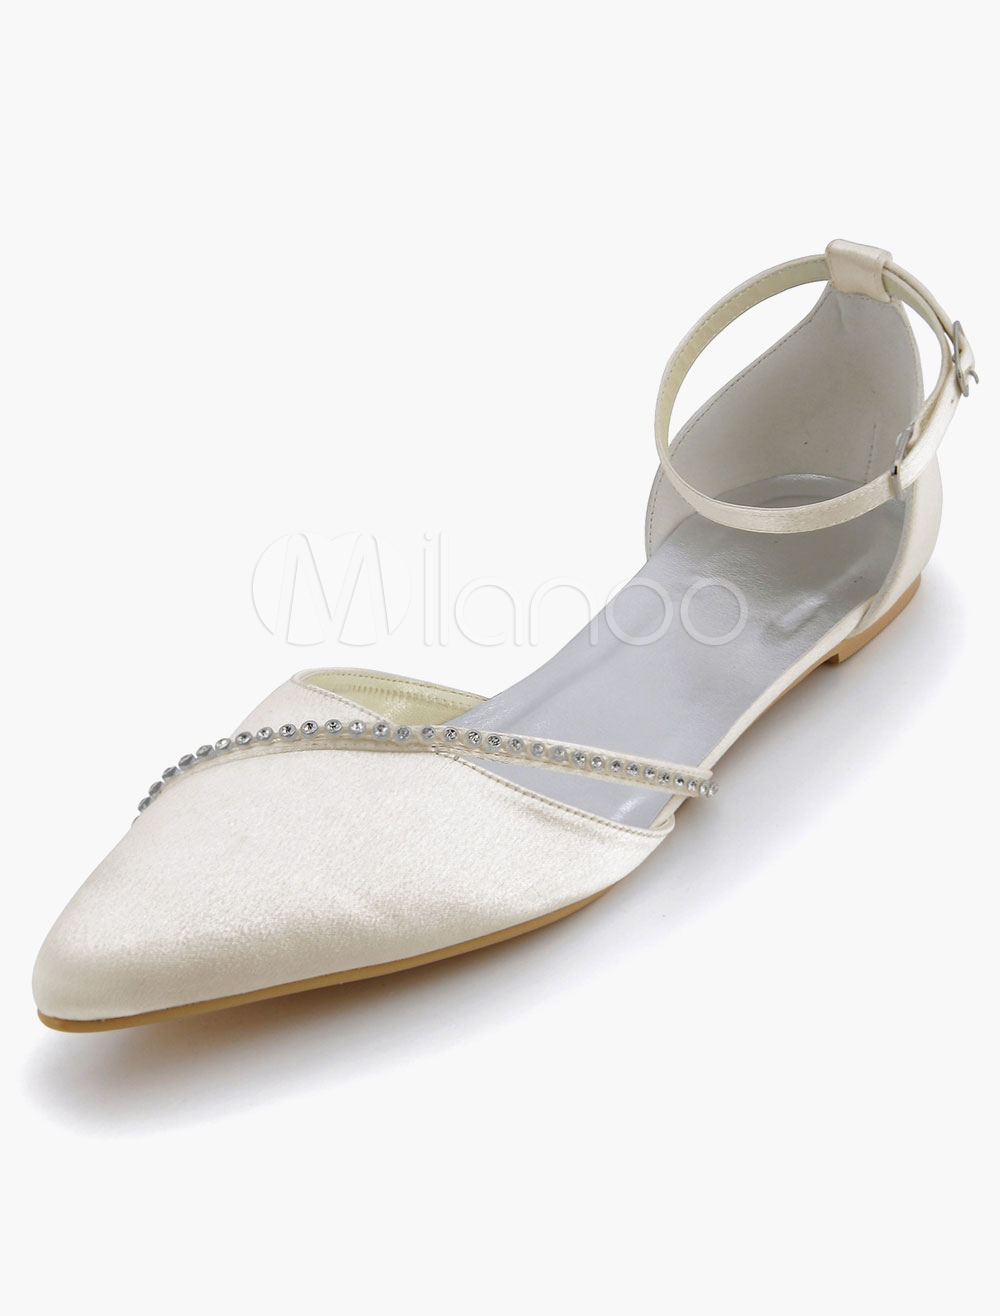 Satin Wedding Shoes Pointed toe Rhinestones Wedding Guest Shoes Flat Mother Shoes